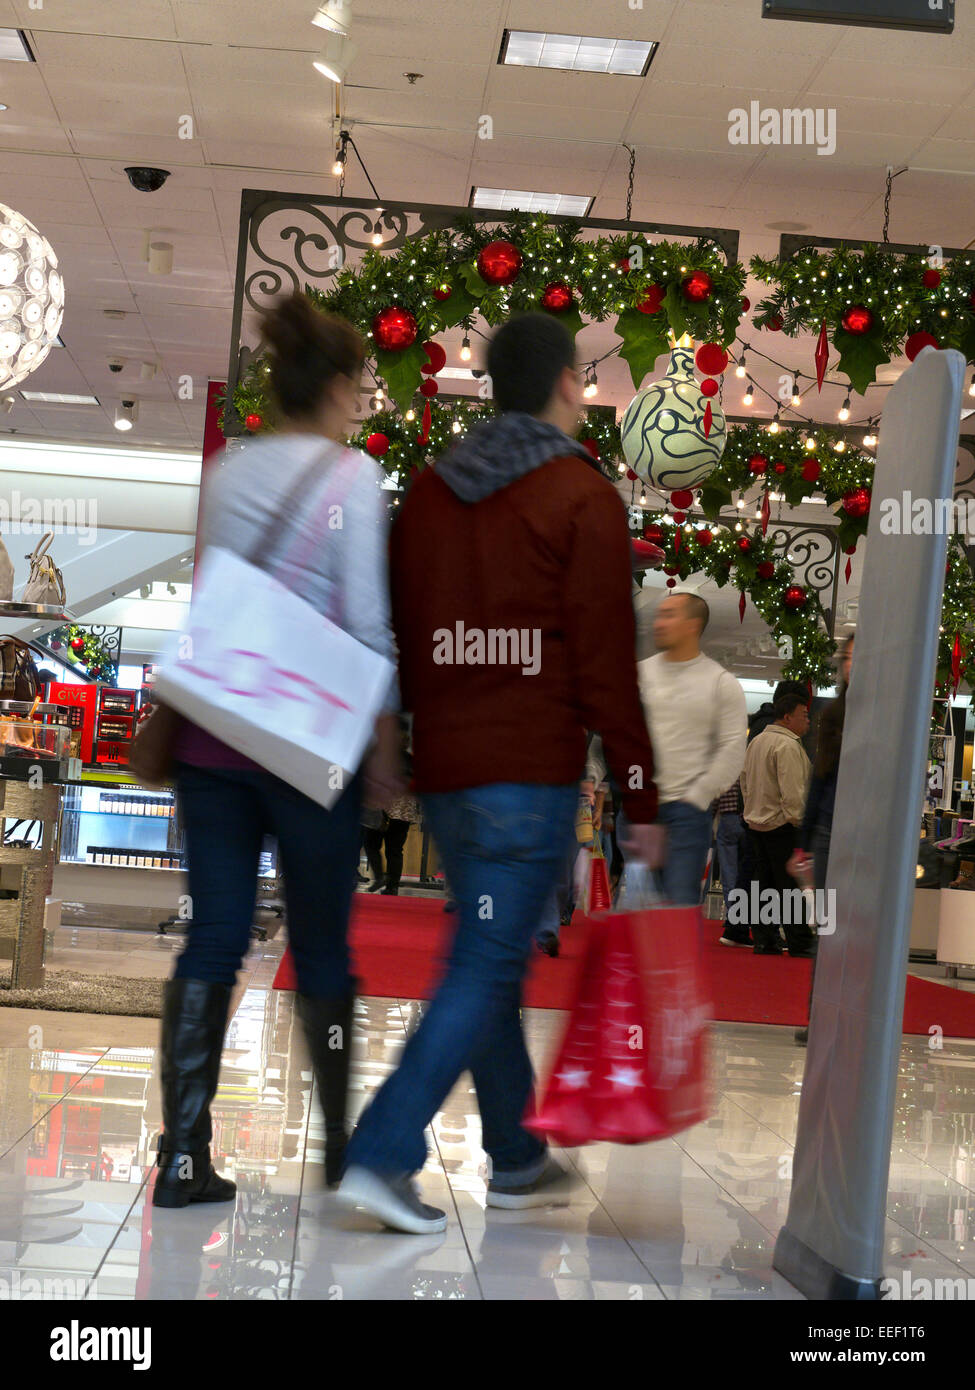 Christmas shoppers in shopping mall with electronic security tag detector at store entrance in foreground - Stock Image